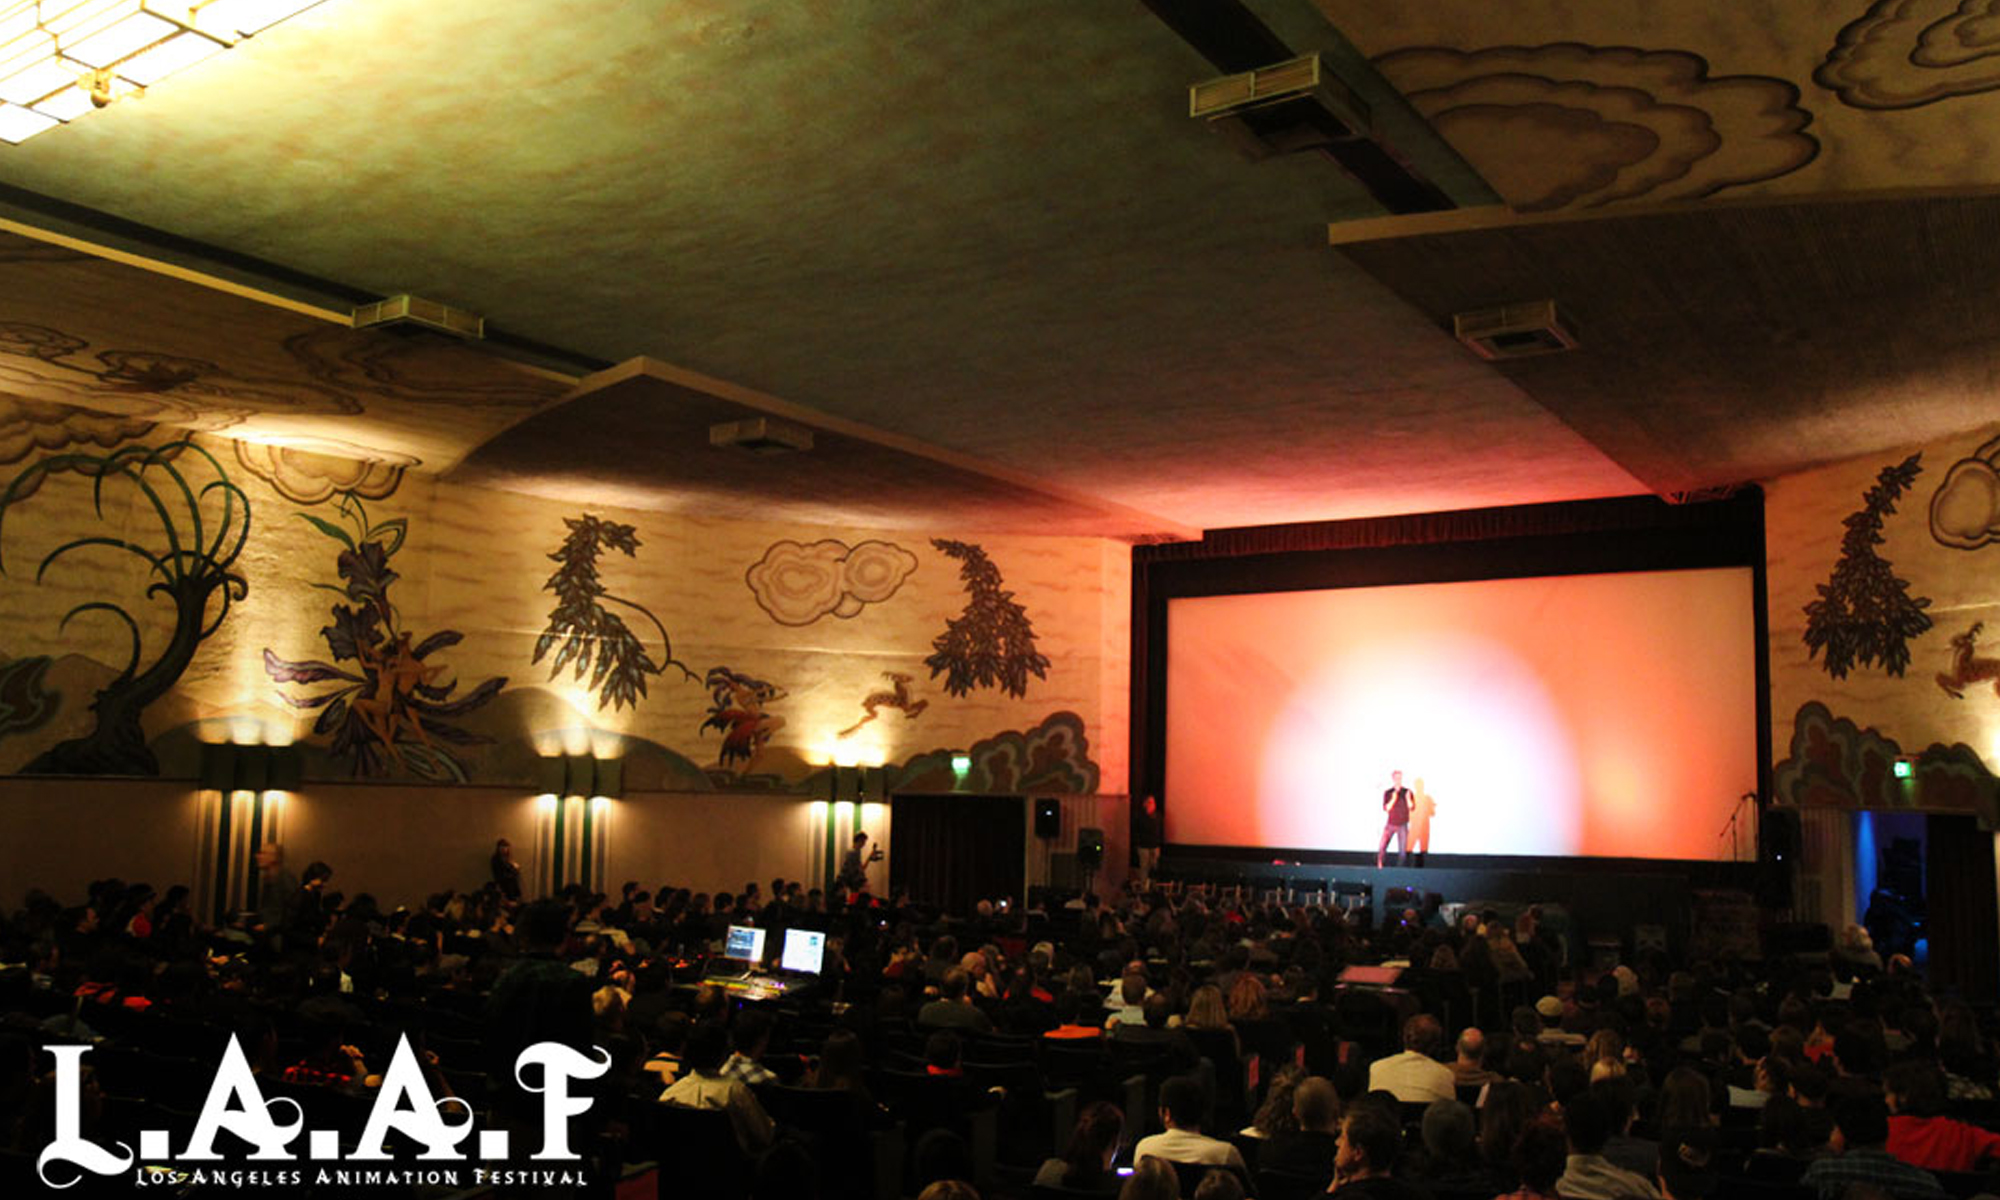 Los Angeles Animation Festival